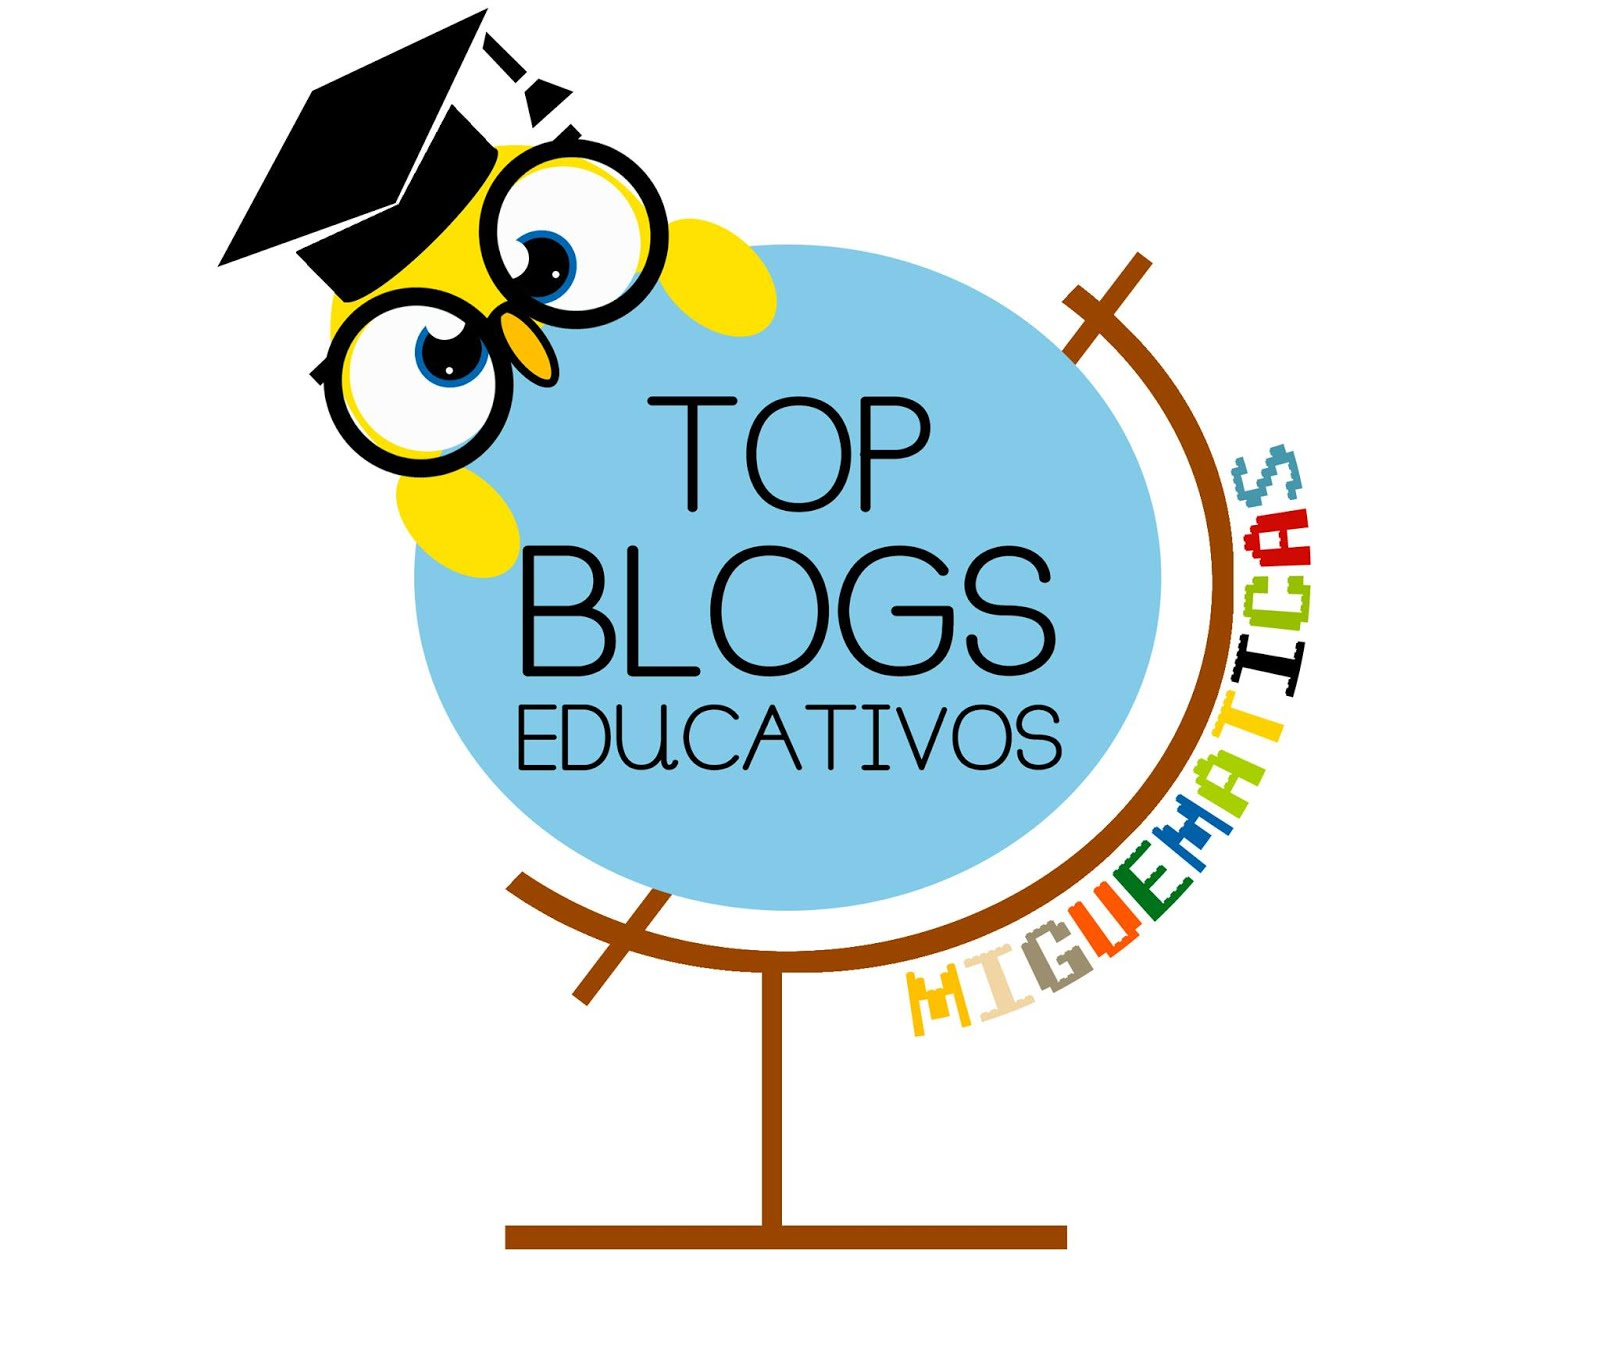 Top Blogs Educativos